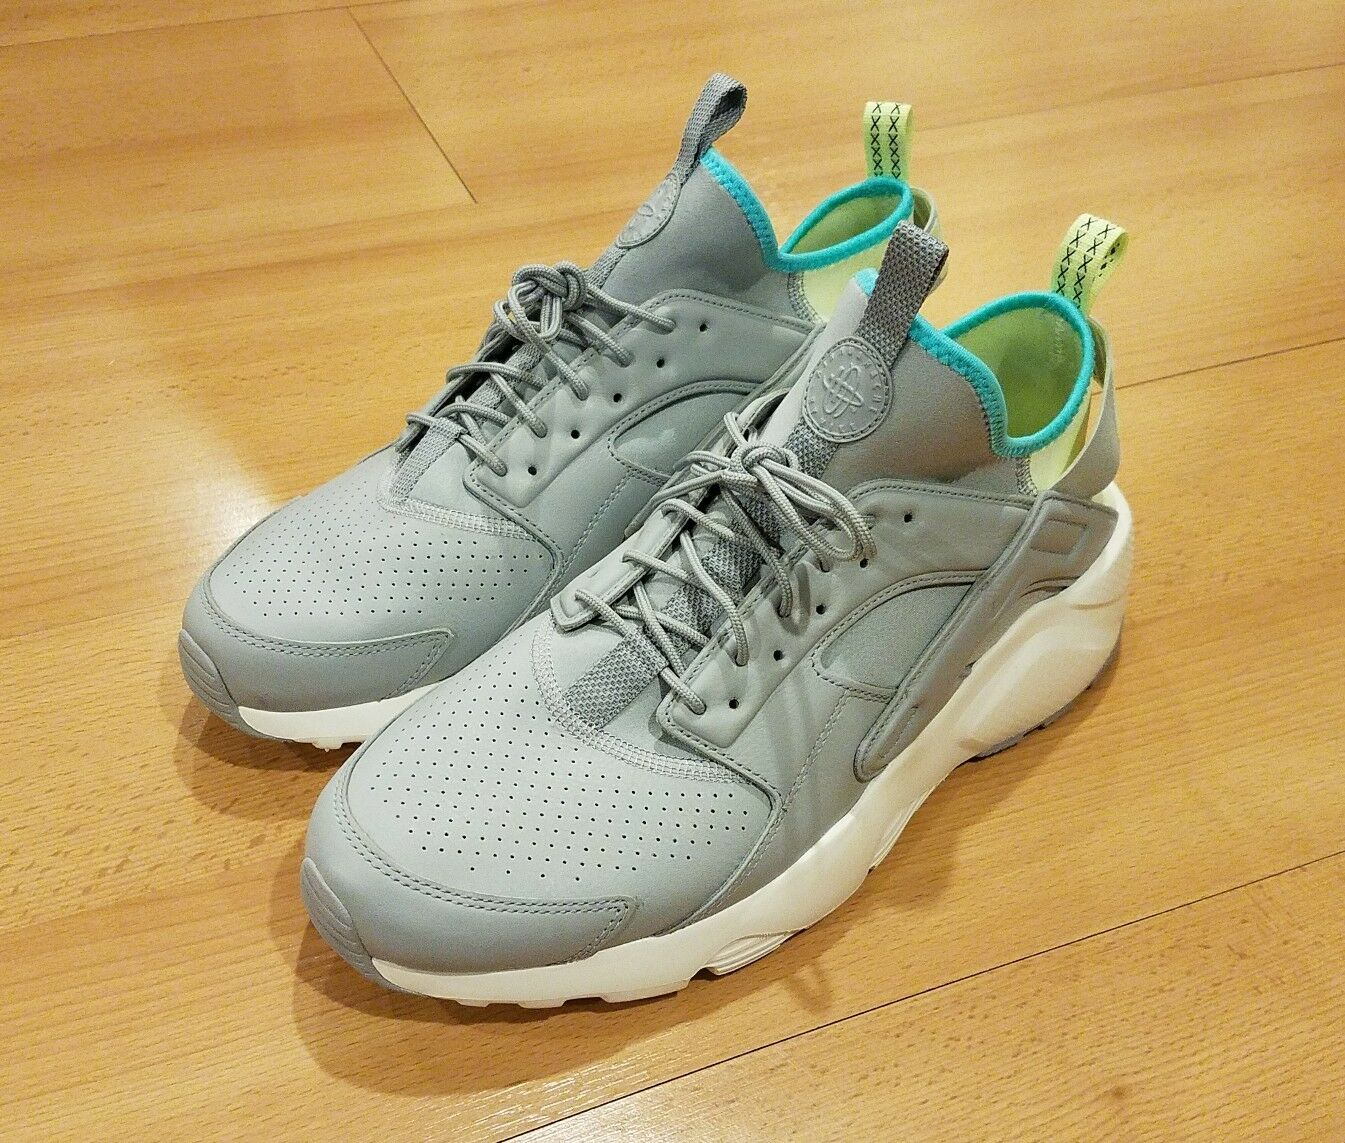 NIKE AIR HUARACHE RUN ULTRA SE RUNNING '17 WOLF GREY GREEN 875841-002 MENS SZ 13